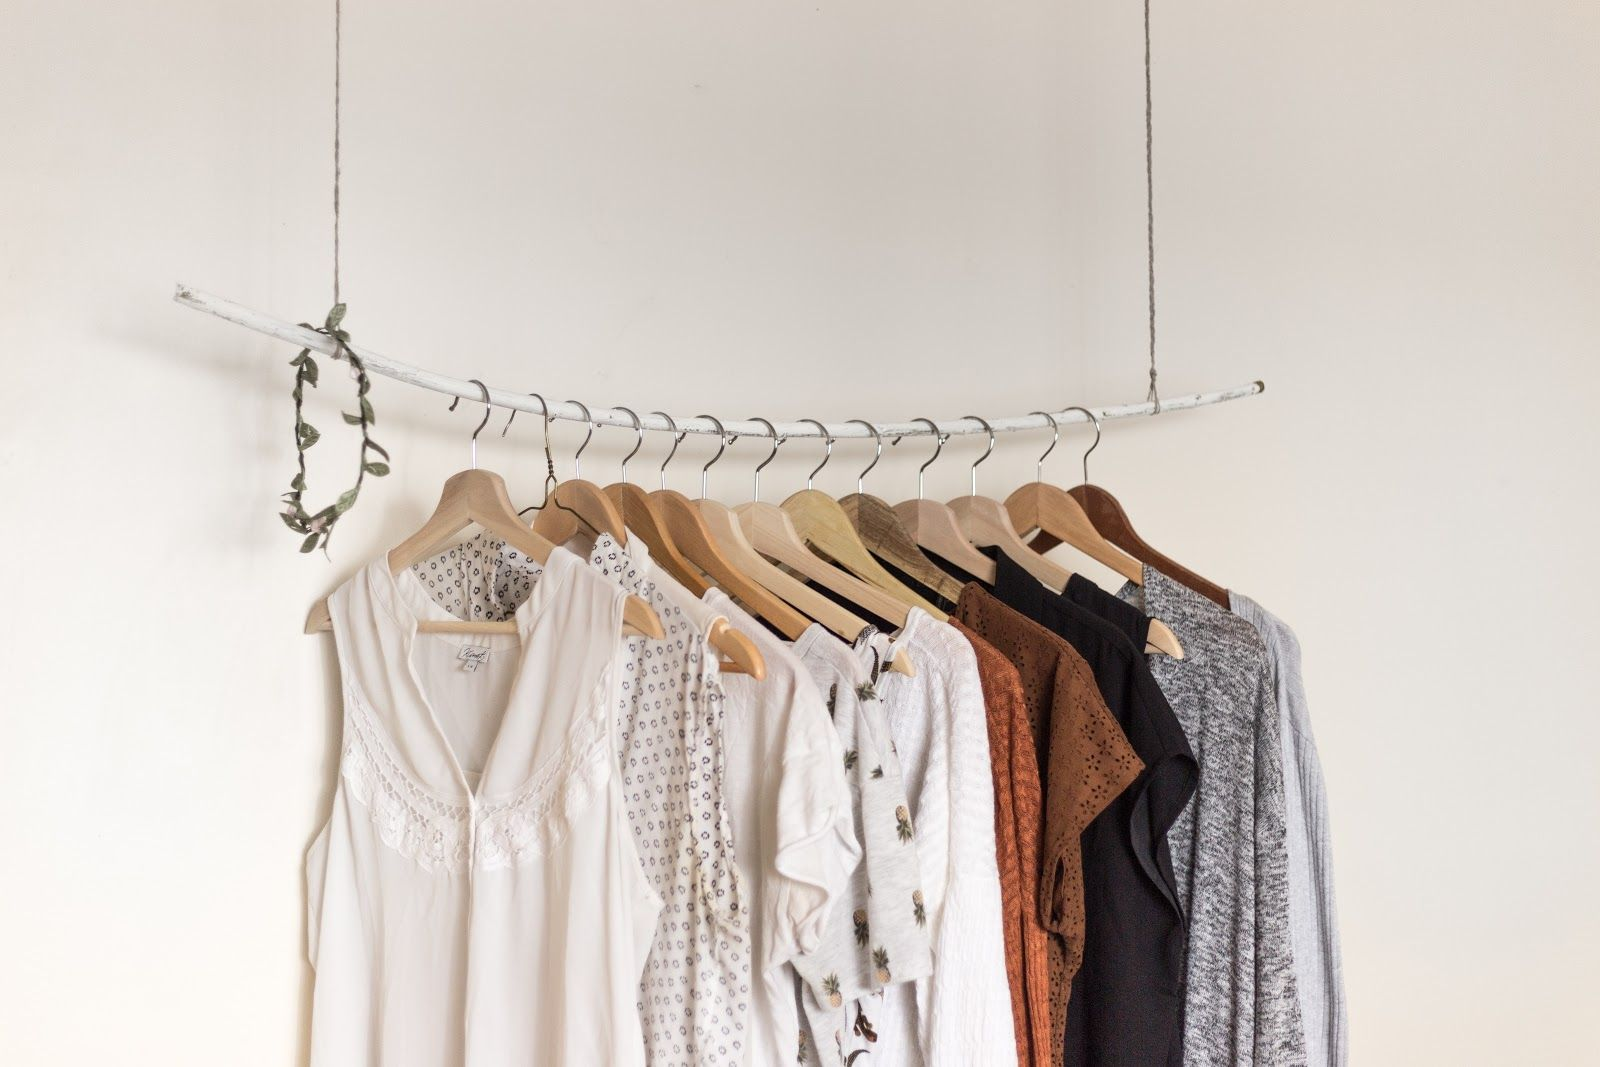 /5-ways-to-drive-more-traffic-and-sales-to-your-clothing-and-apparel-store-7h3v35m0 feature image